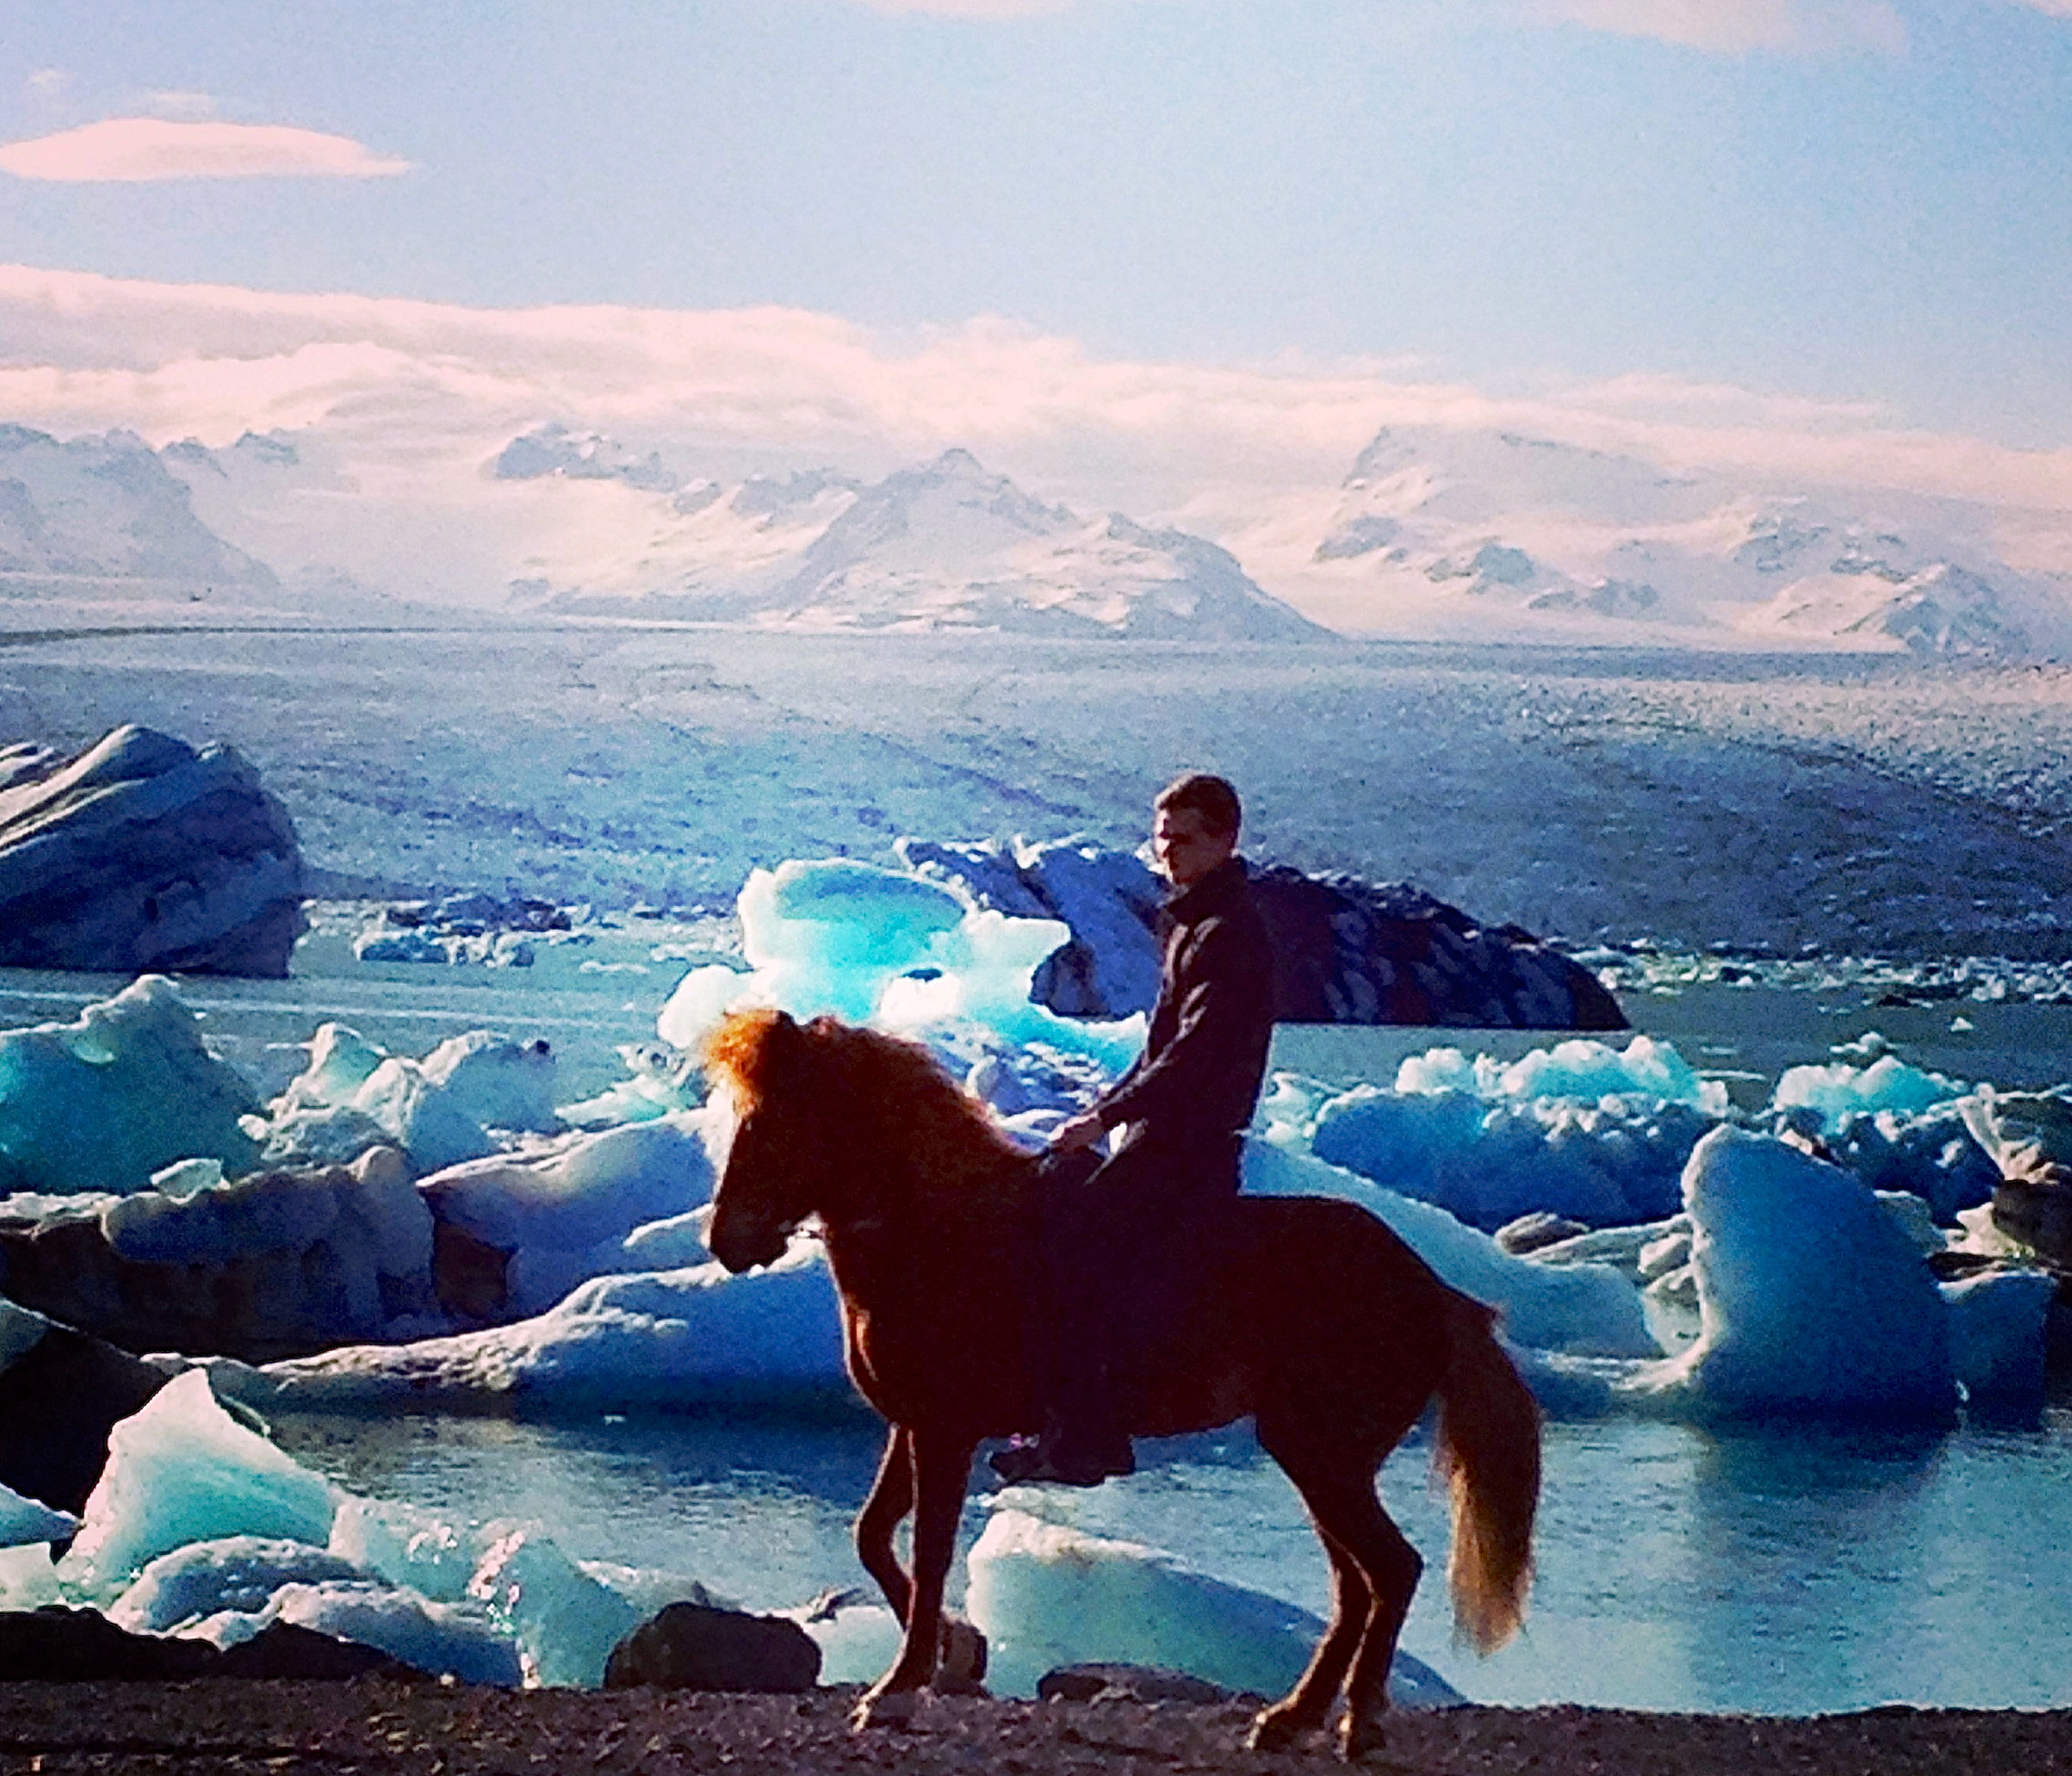 Man on horse at Jokulsarlon Lagoon in Iceland